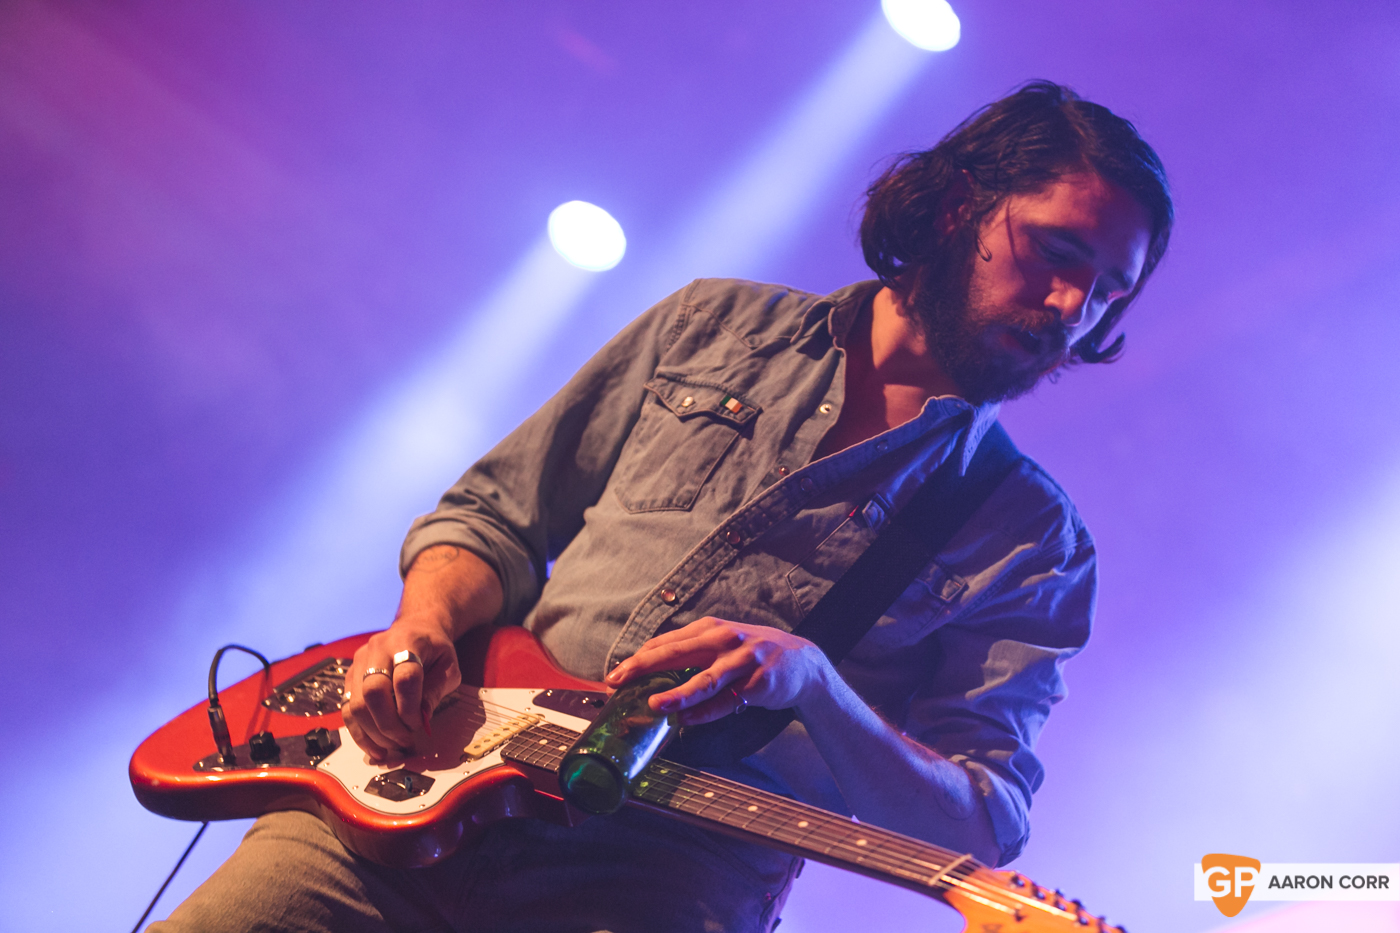 Fontaines DC at Choice Music Prize 2020 in Vicar Street, Dublin on 05-Mar-20 by Aaron Corr-5468